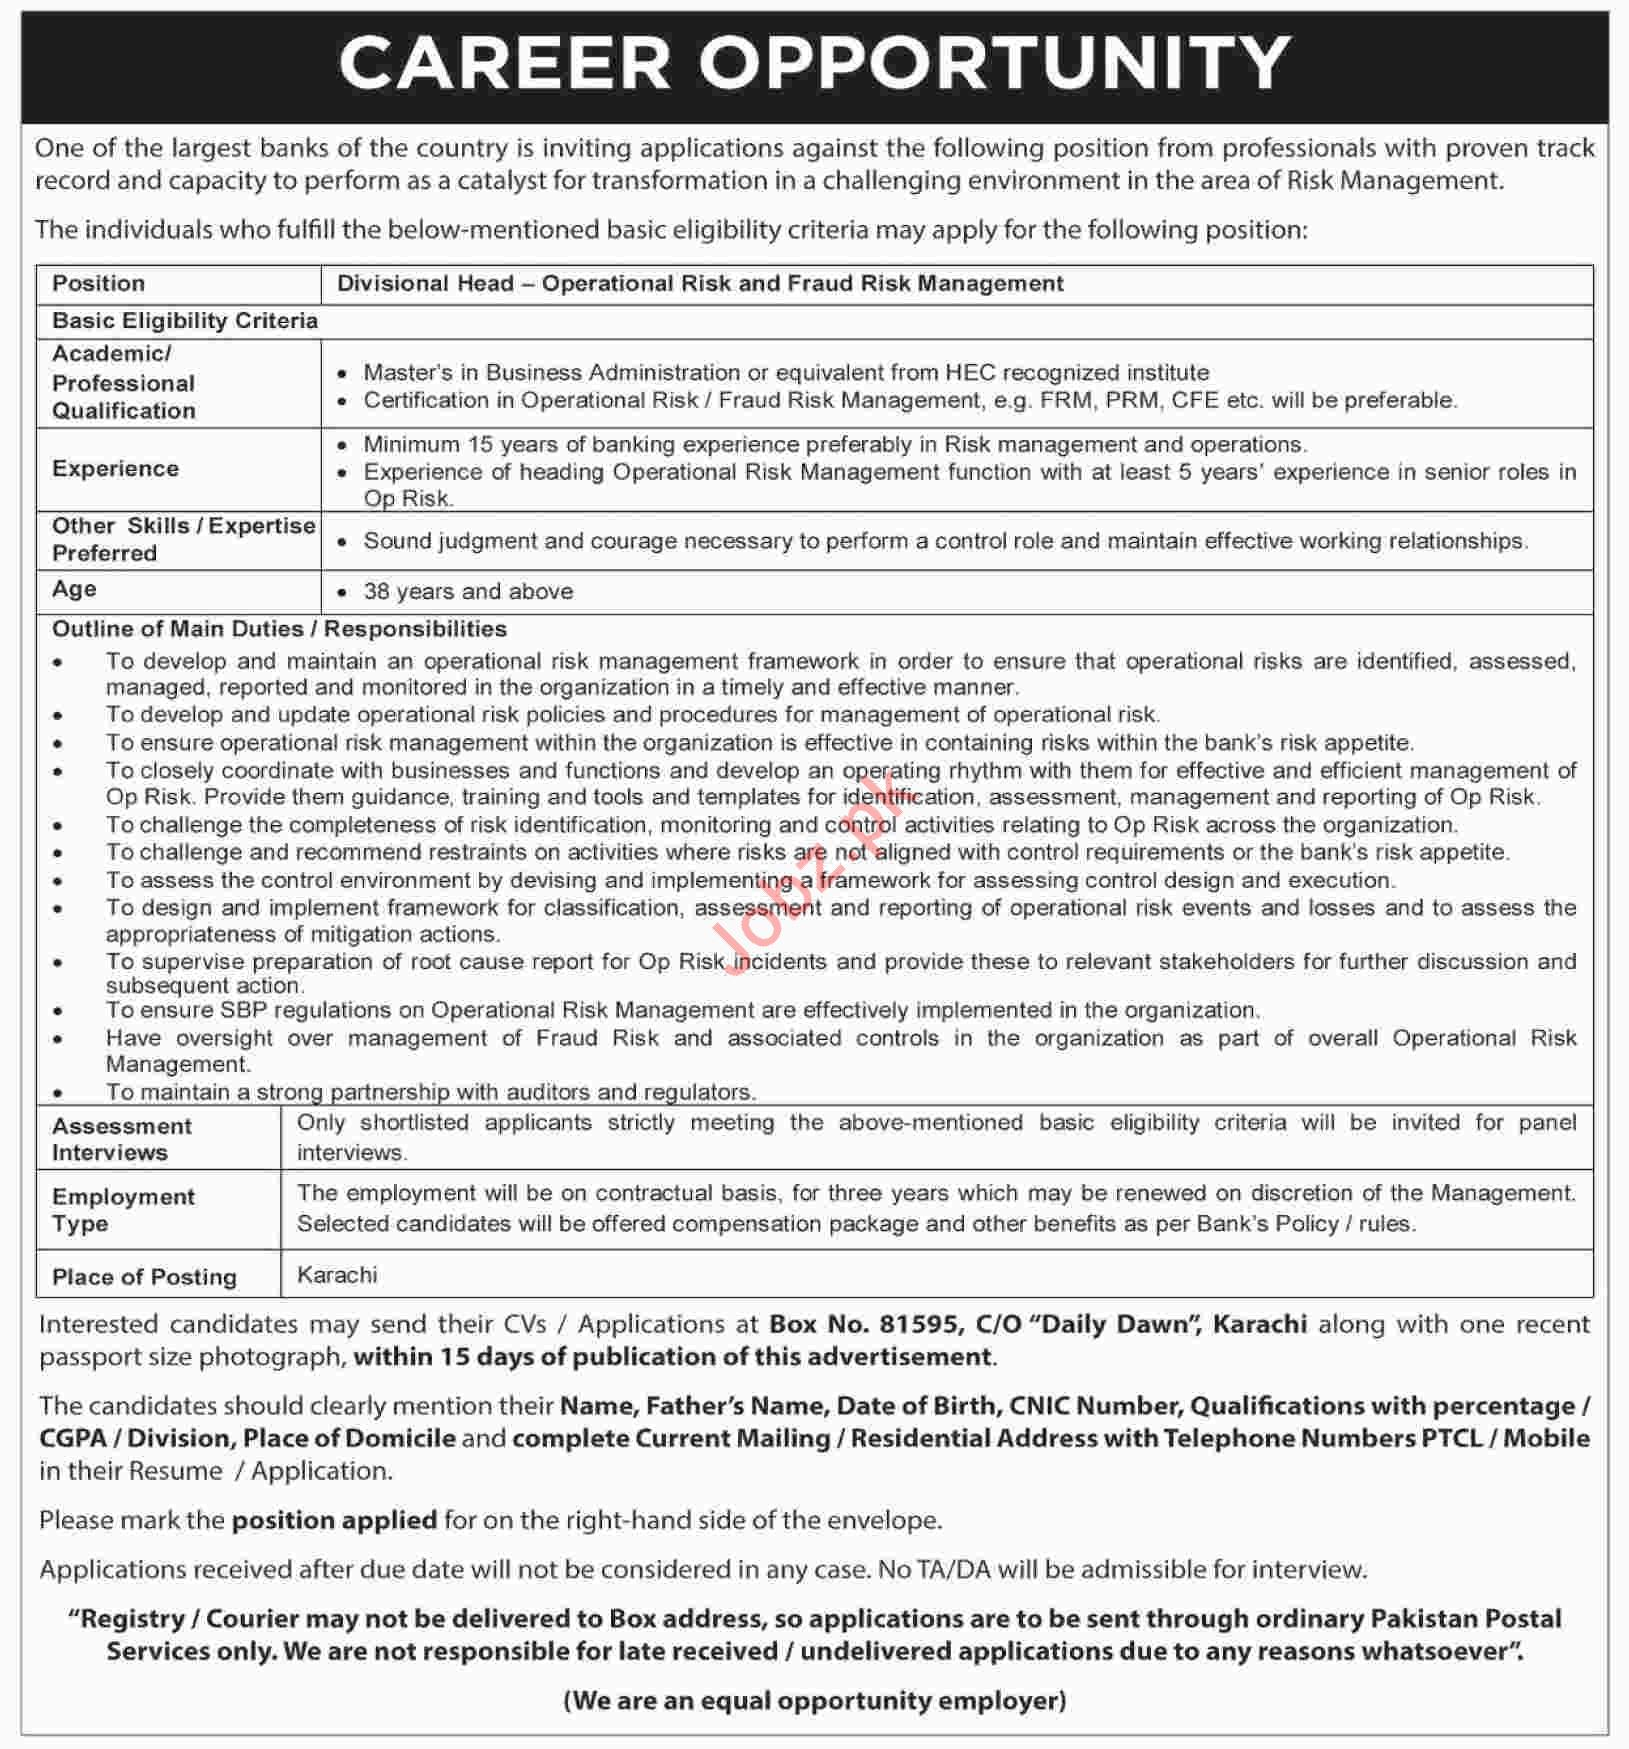 Divisional Head Jobs in Commercial Banks